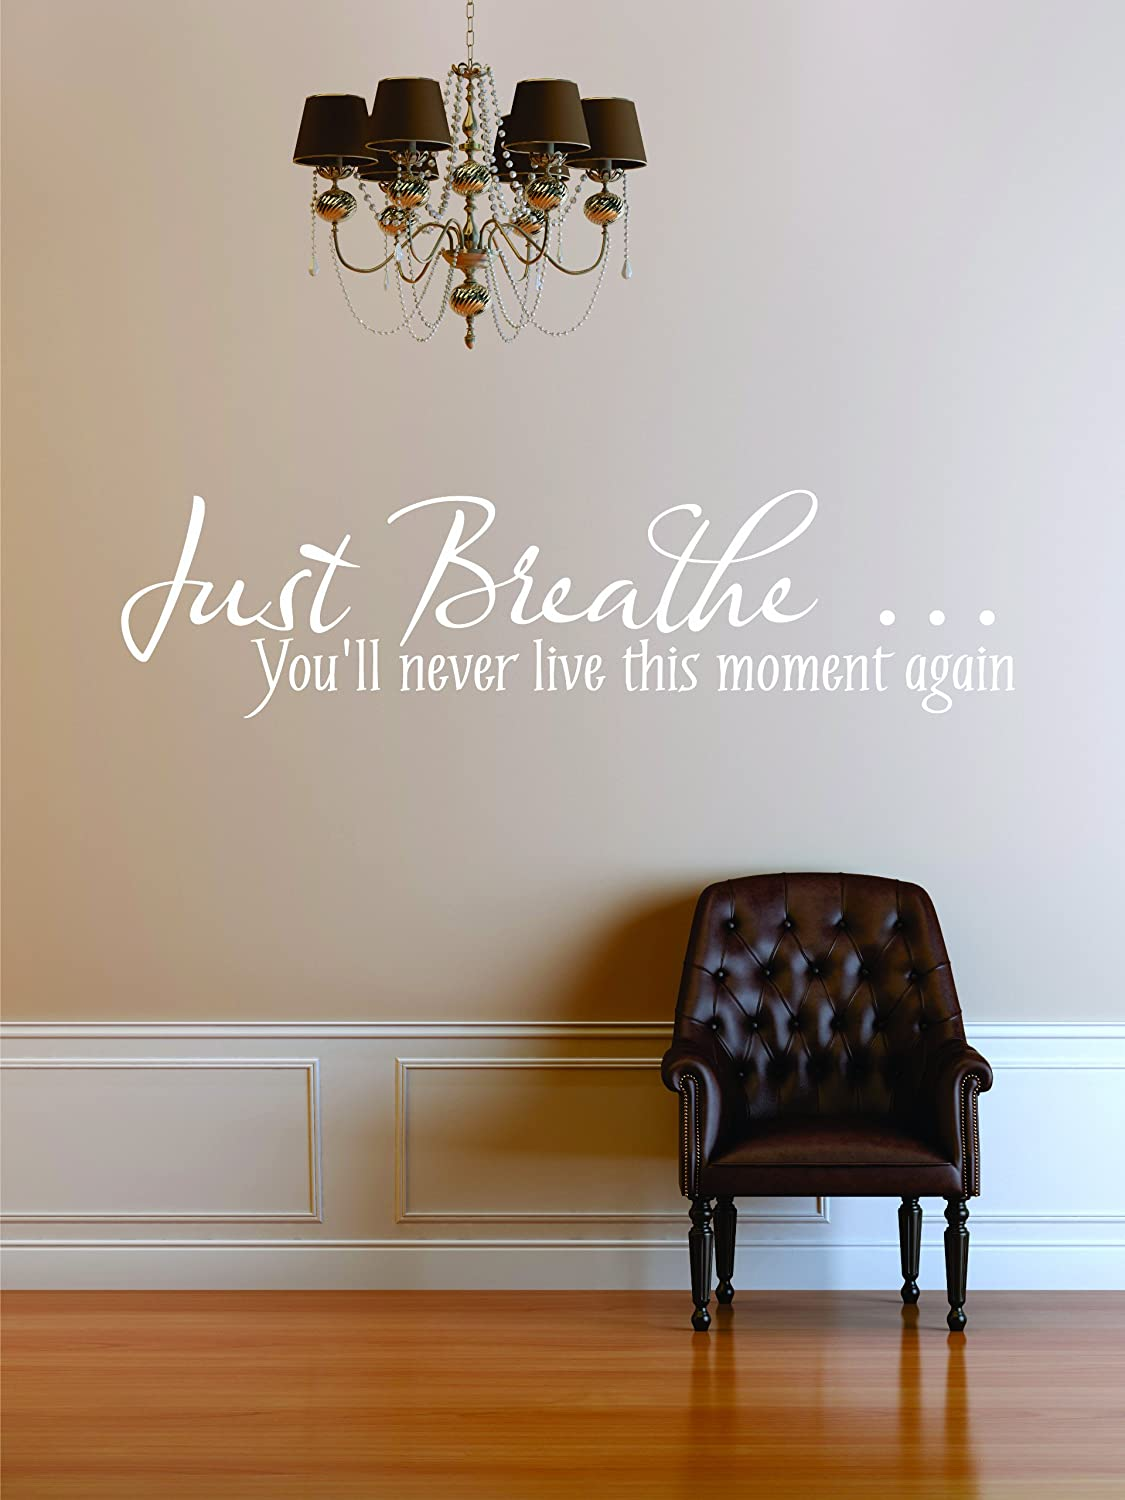 Picture Art White Design with Vinyl Just Breathe Youll Never Live This Moment Again Quote Bed Room Home Decor Peel /& Stick Wall Decal Sticker Size: 10x30 Color: White White Design 434